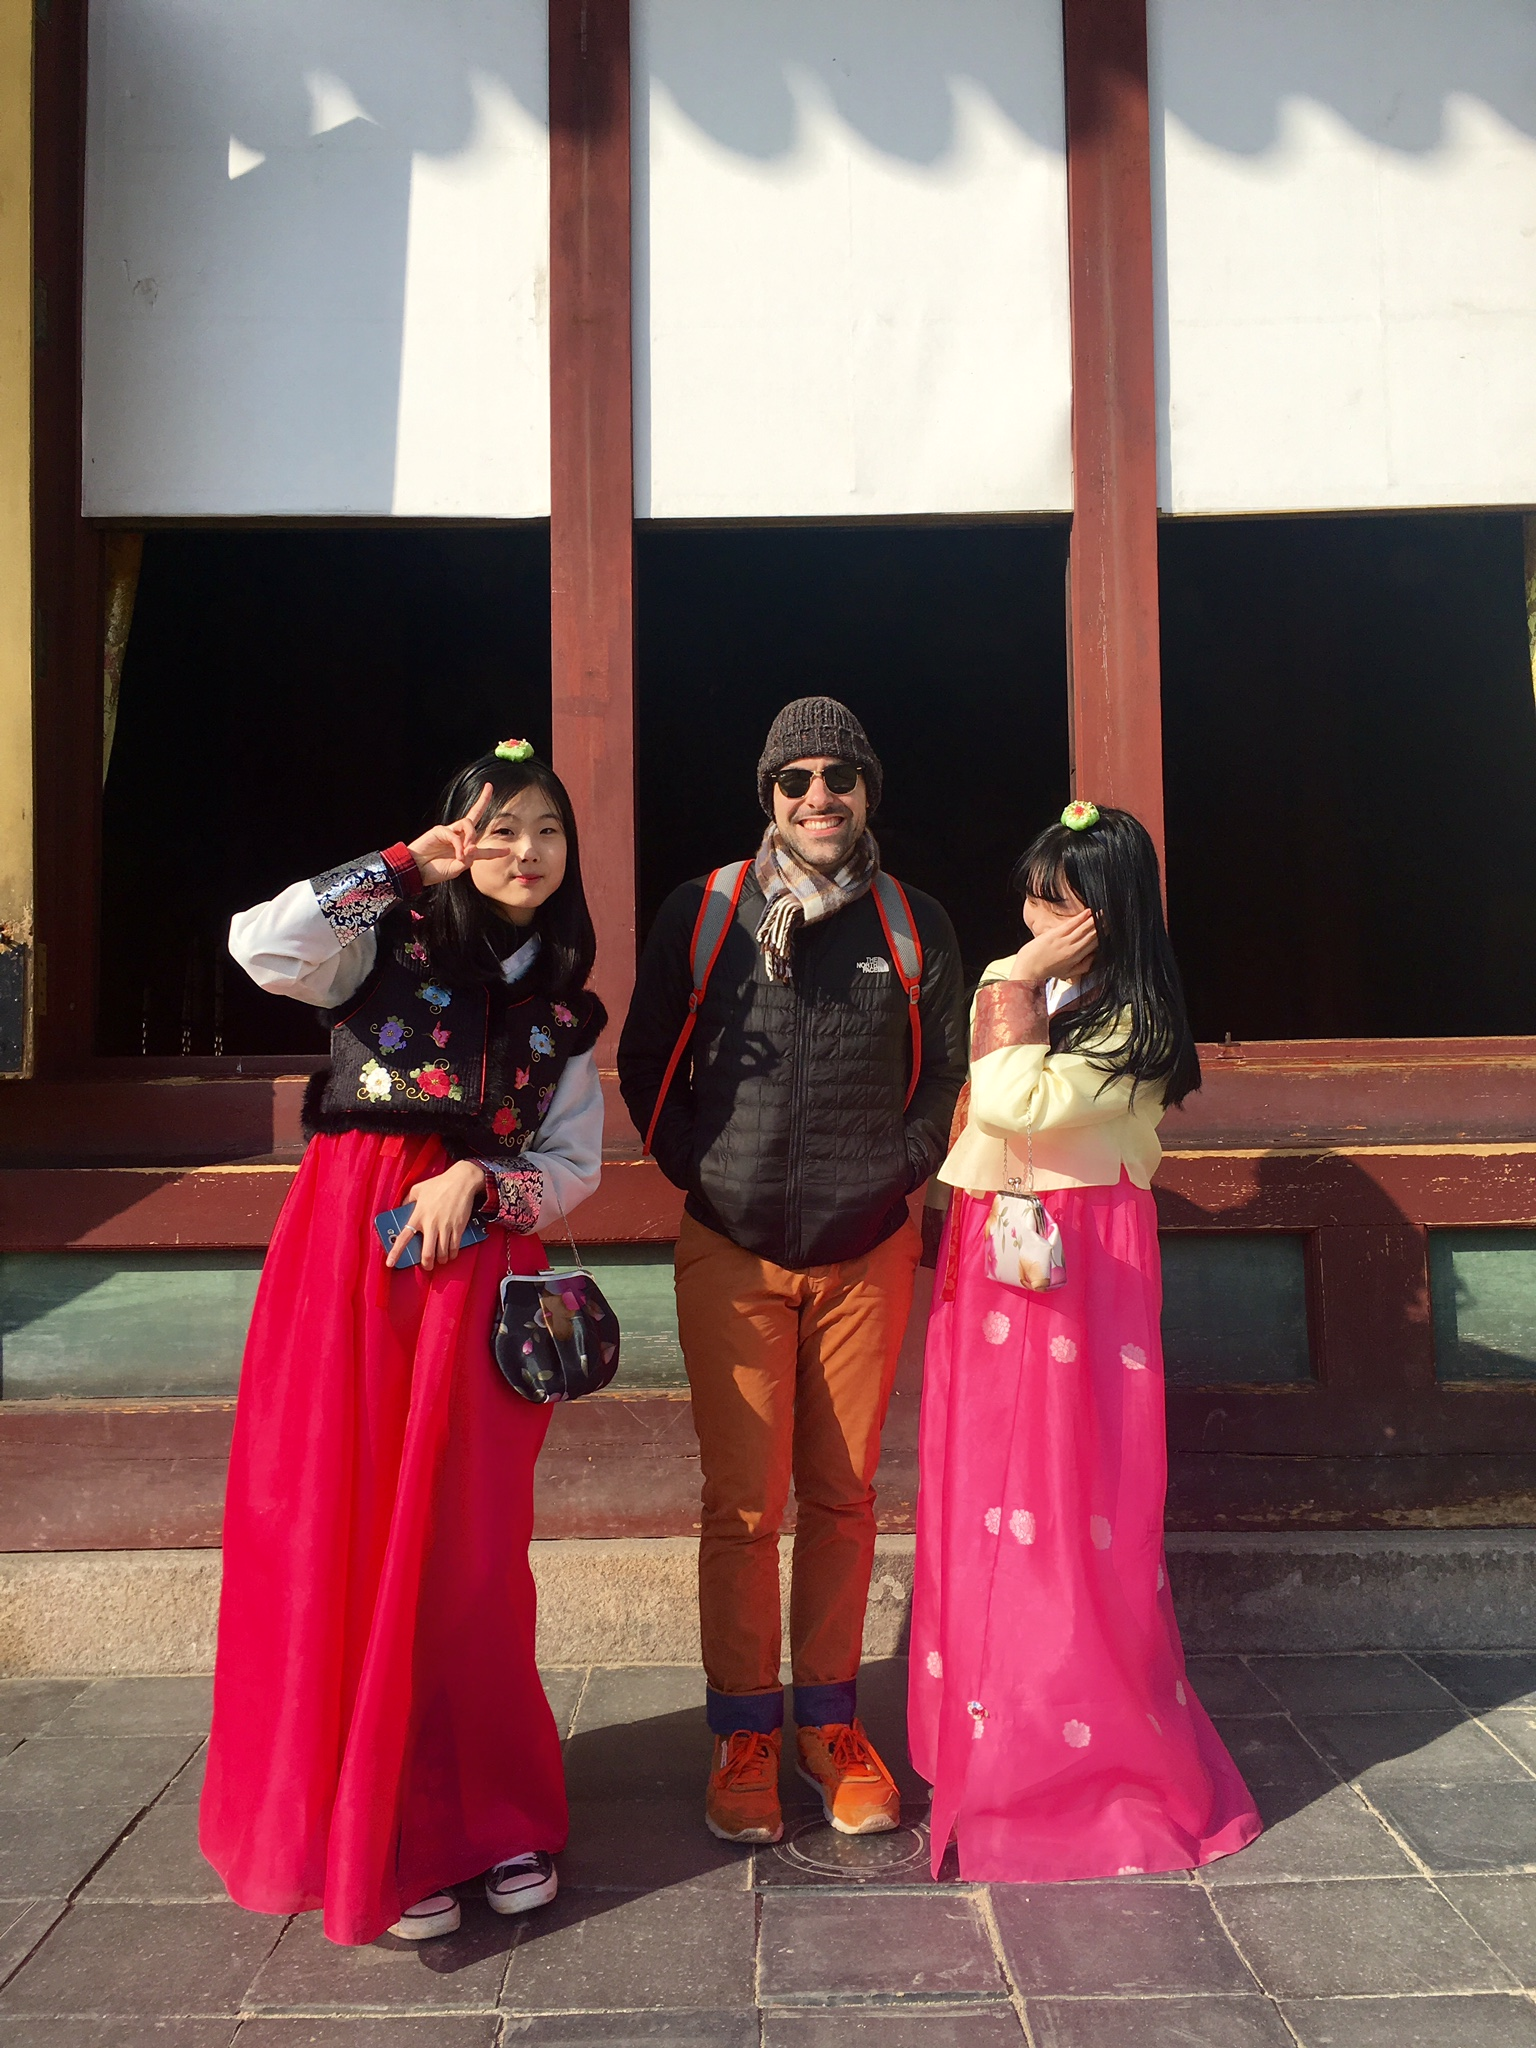 2 very strange girls, in traditional Korean clothing called Hanbok.